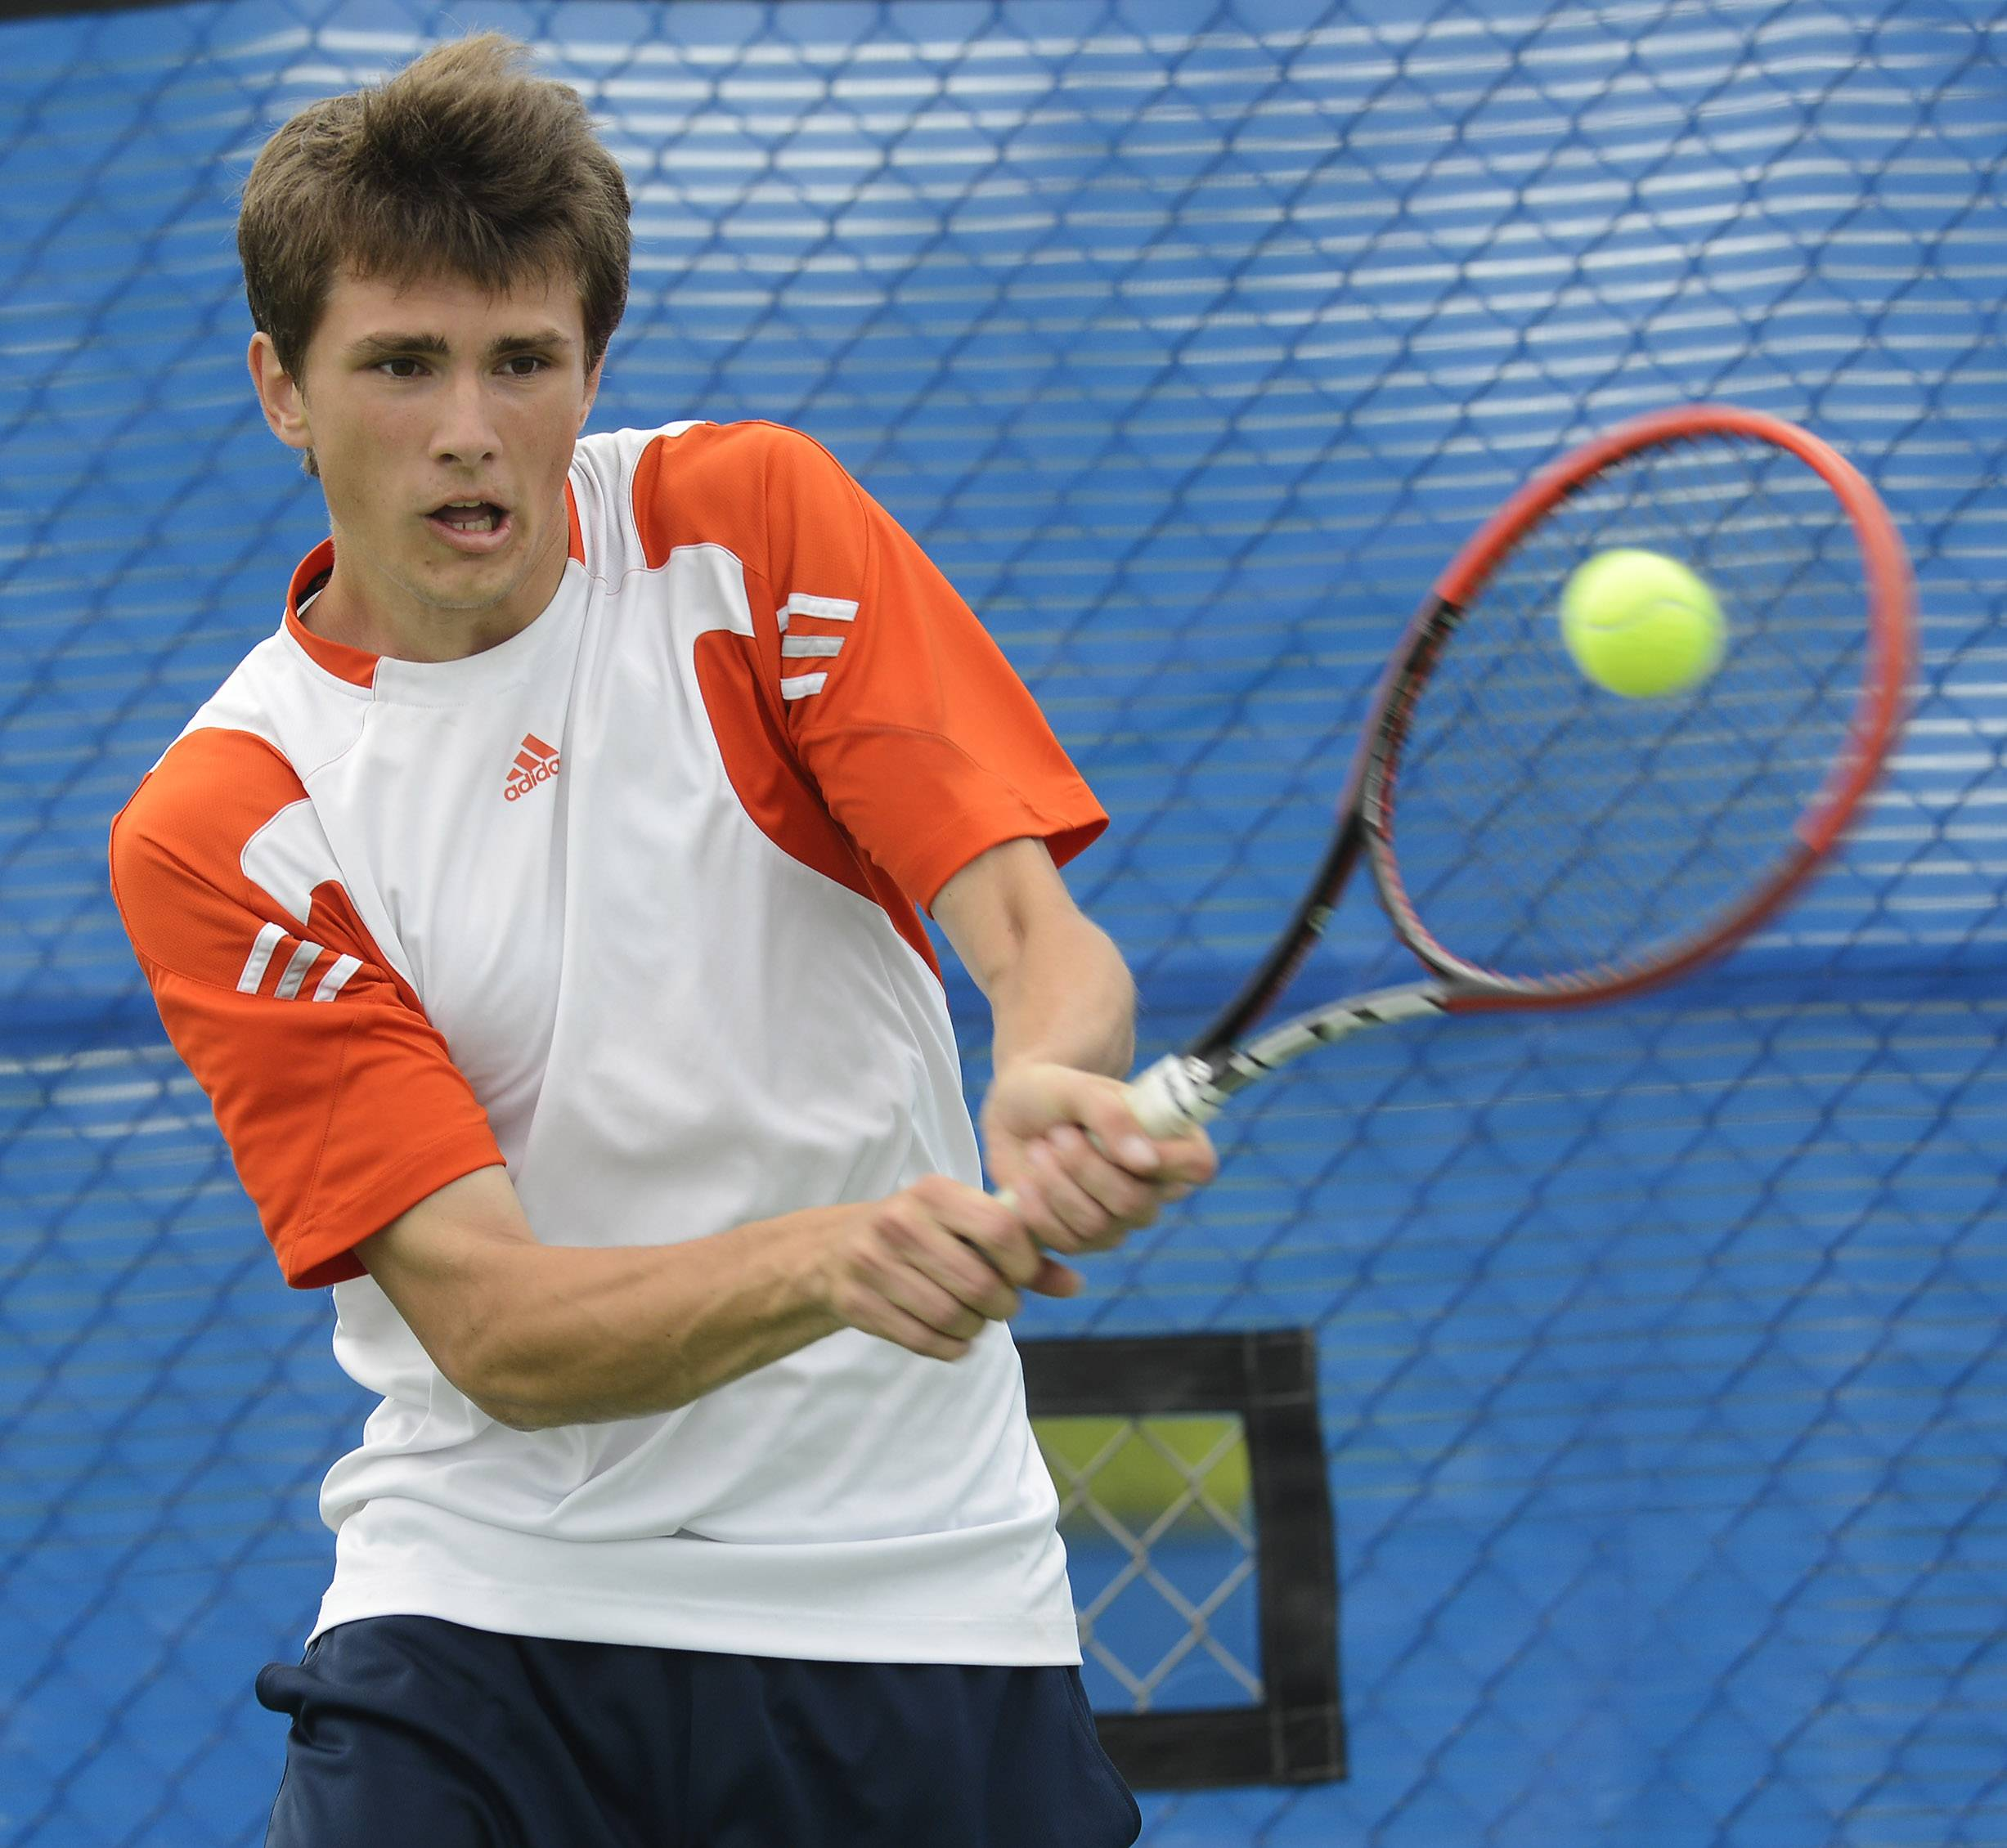 Alan Fijalkowski of Buffalo Grove competes during Day 1 of the boys tennis state tournament on Thursday at Hoffman Estates.